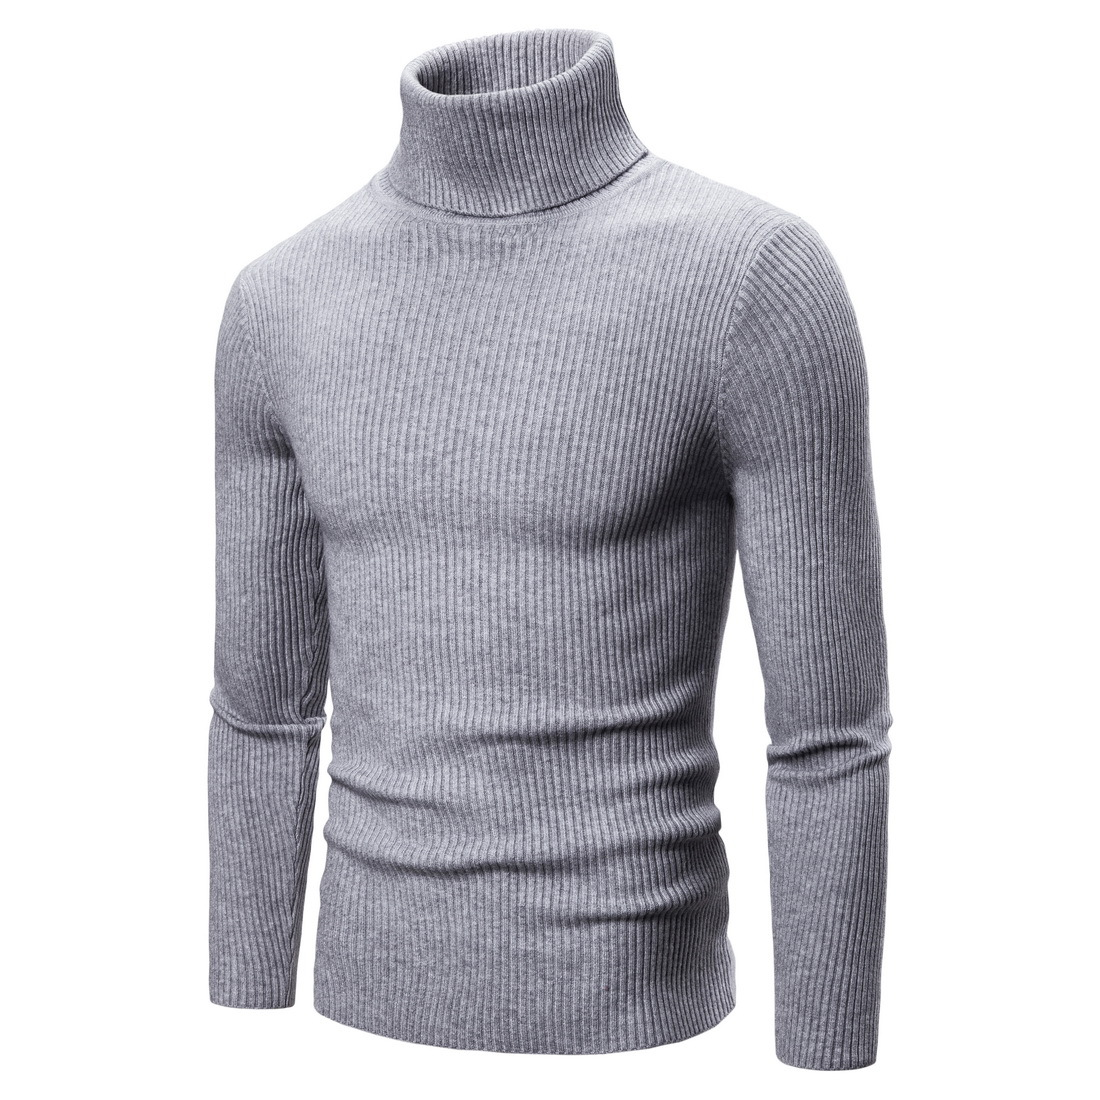 14 Colors GustOmerD 2019 Winter Turtleneck Men Solid Sknny Warm Pullovers Men Sweater Fashion Casual Cashmere Sweater Men Cloth